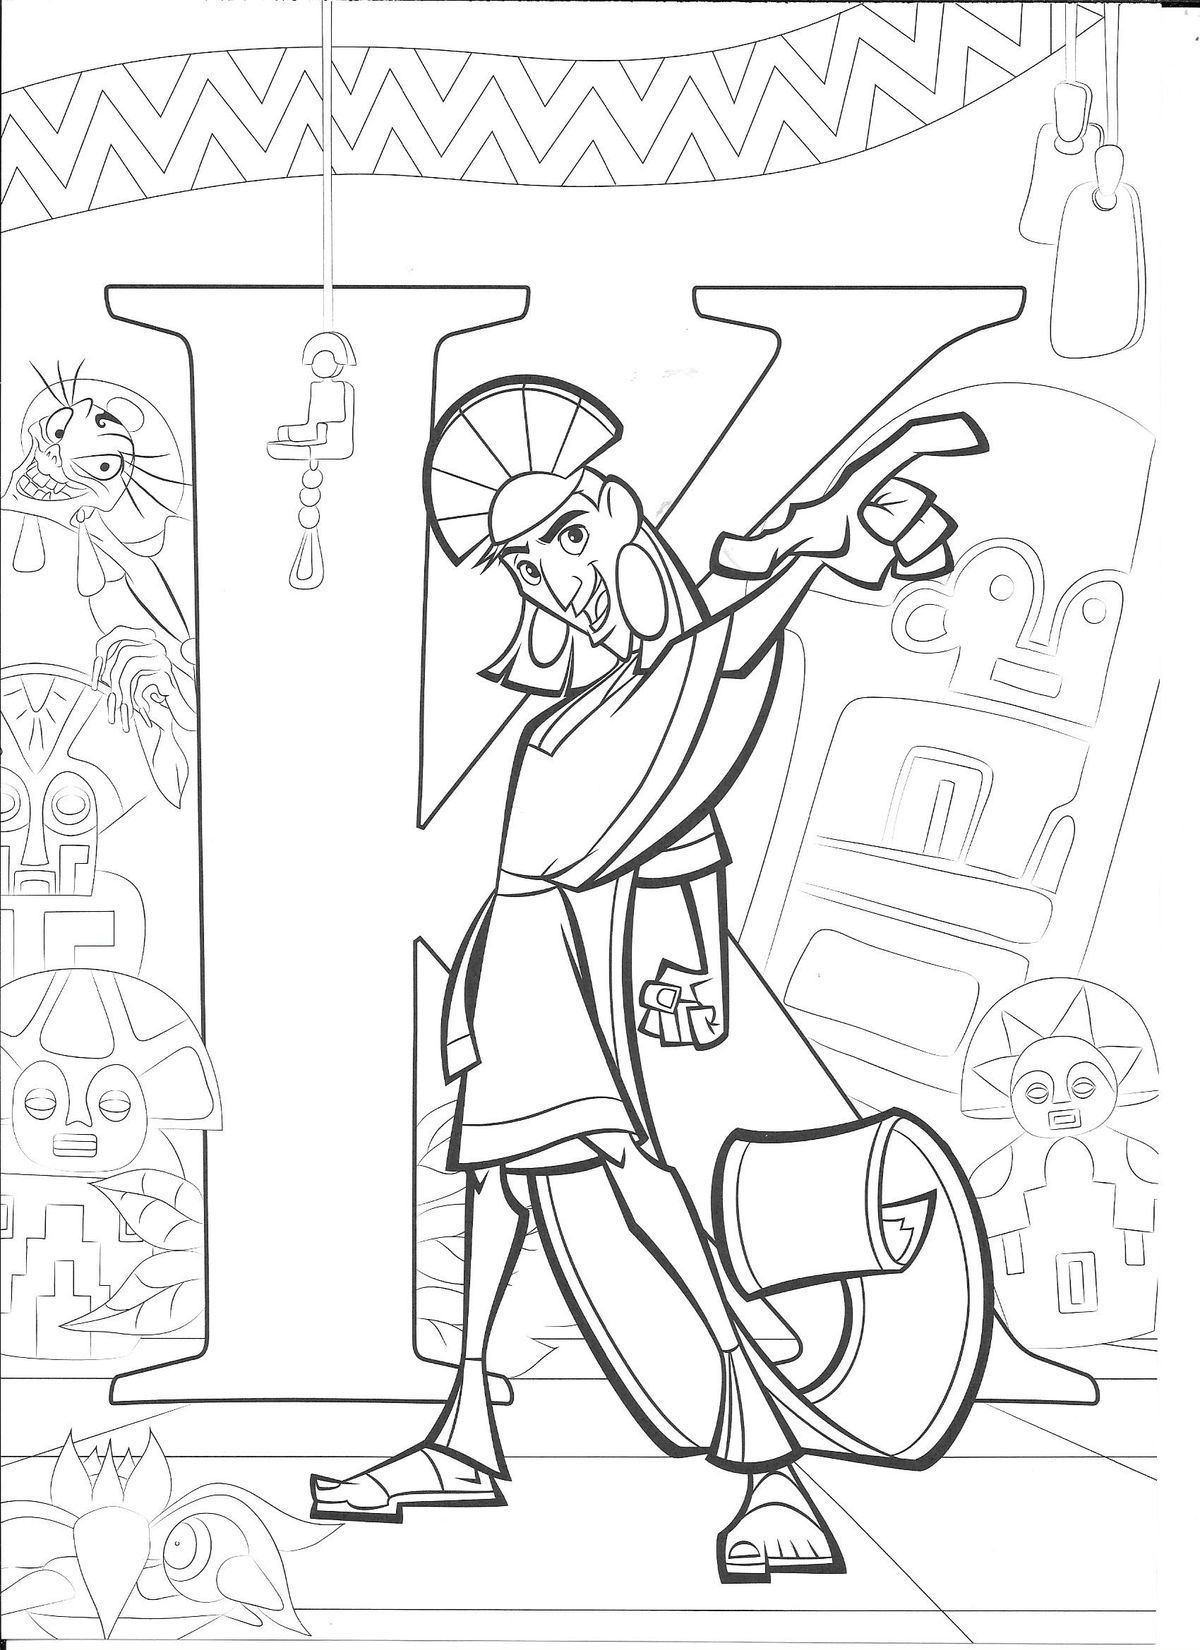 Pin By Mj Guerrero On Alphabet Coloring Sheets Disney Abc